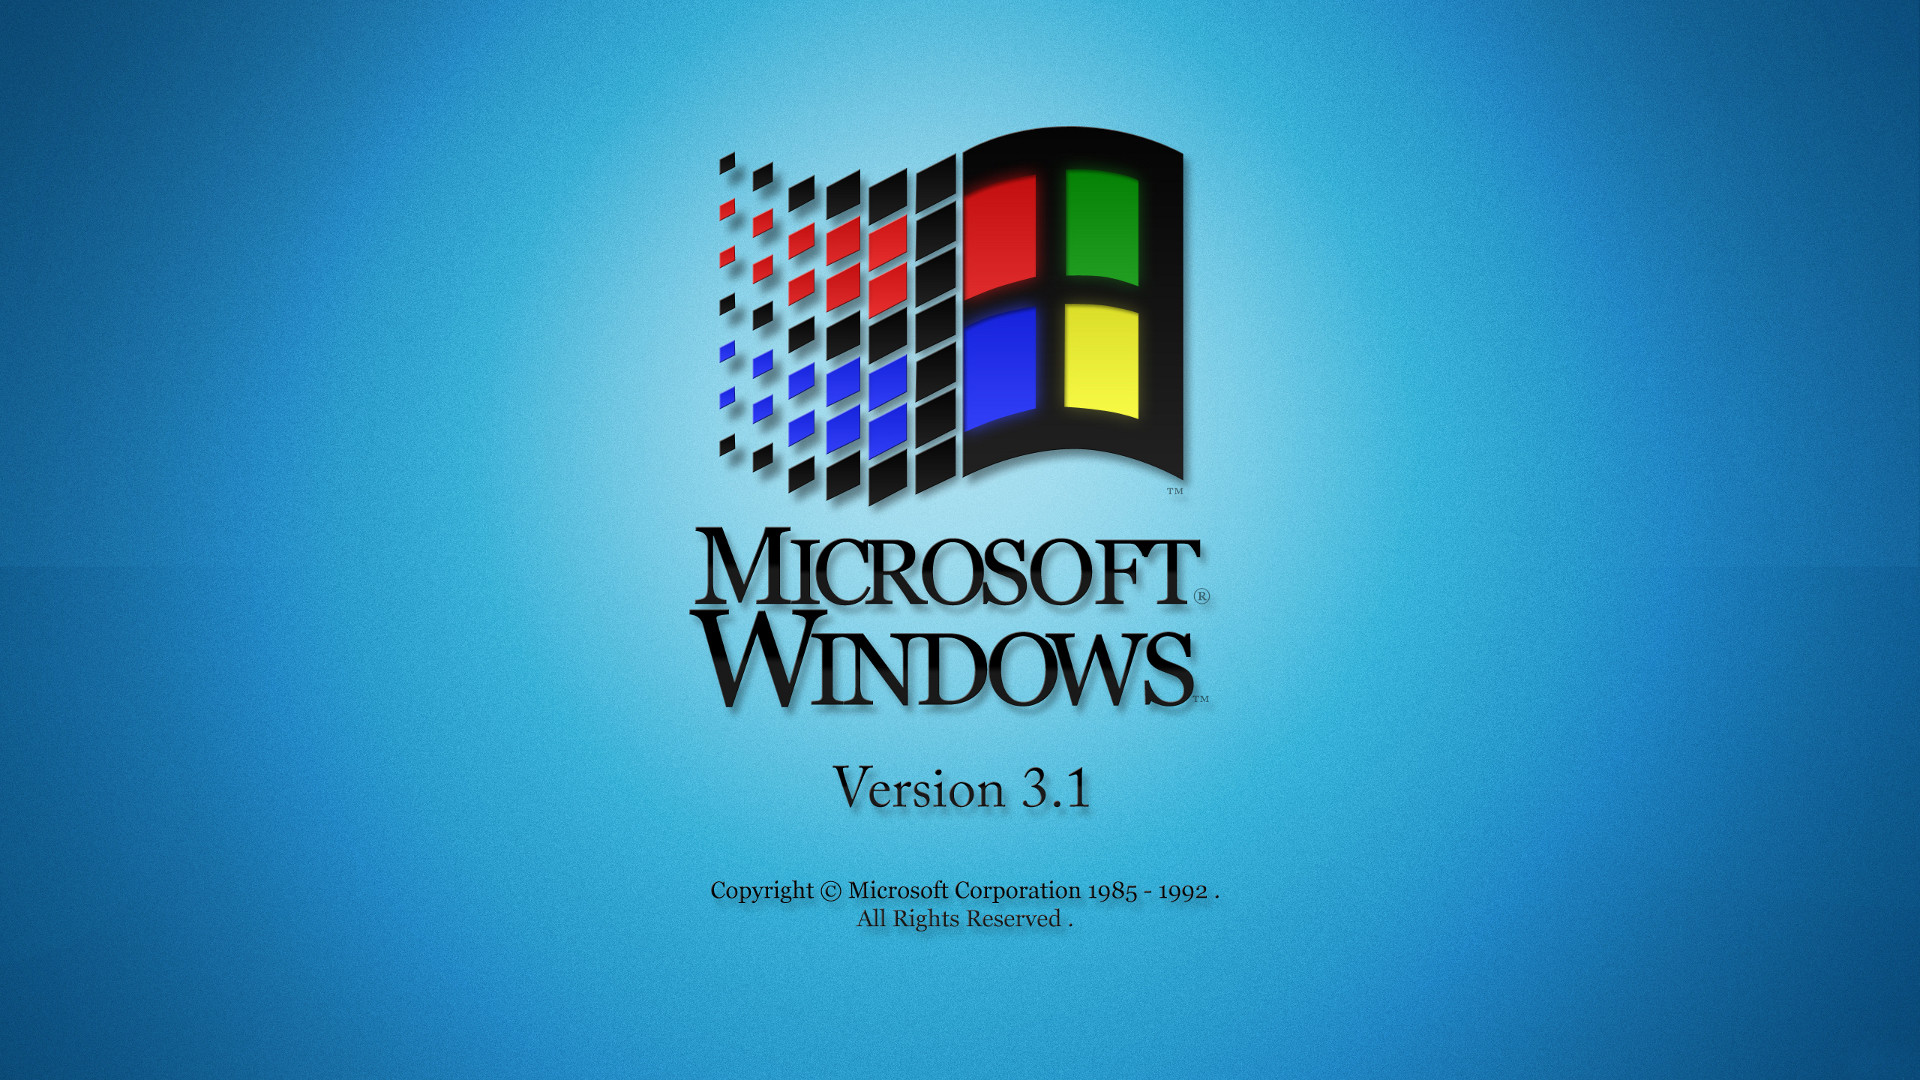 Microsoft Windows Version 3.1 desktop PC and Mac wallpaper